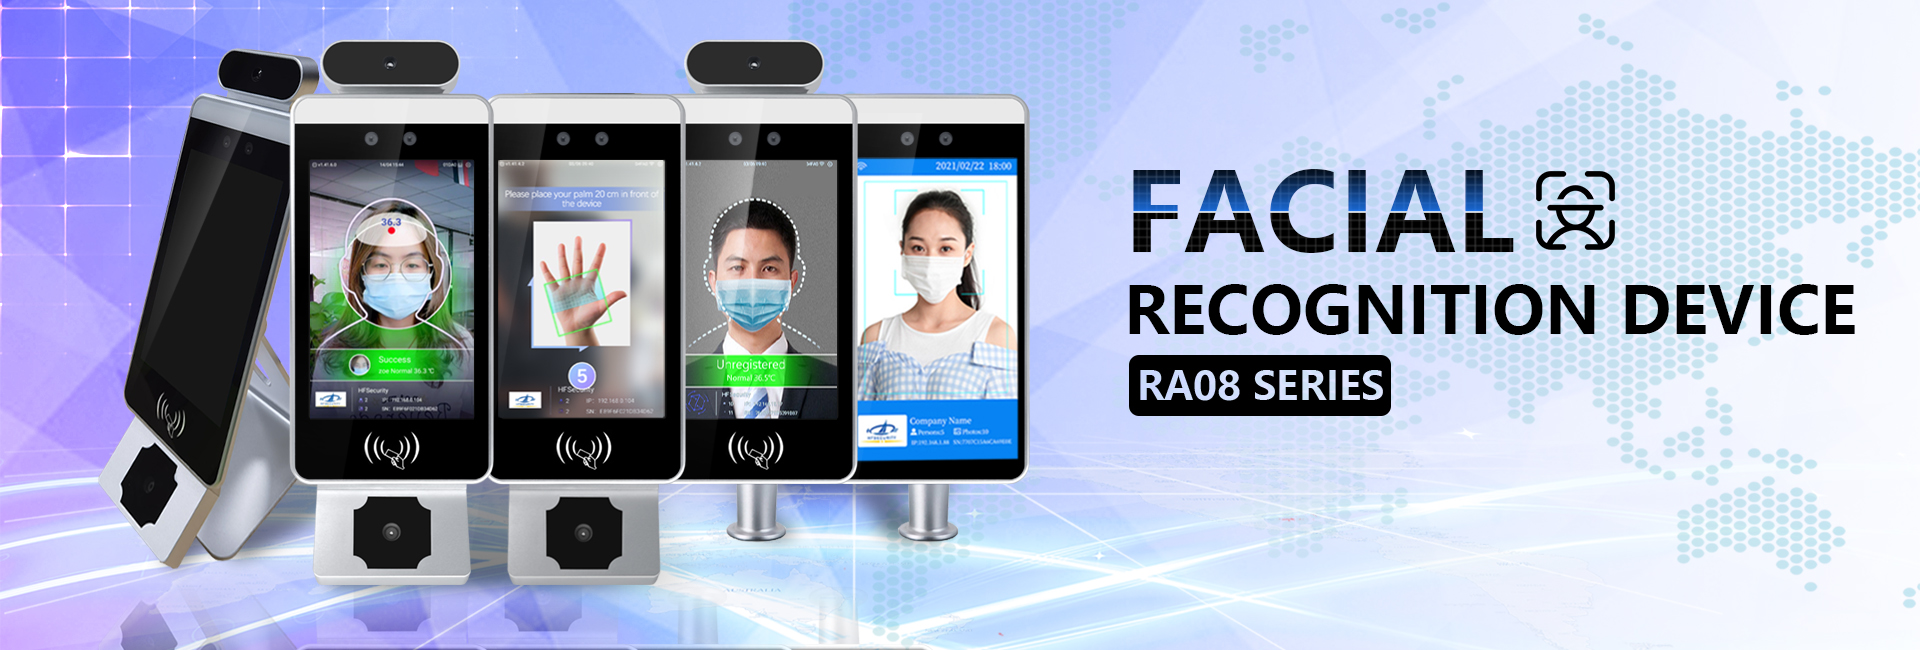 HFSecurity Face Recognition Biometriic Device